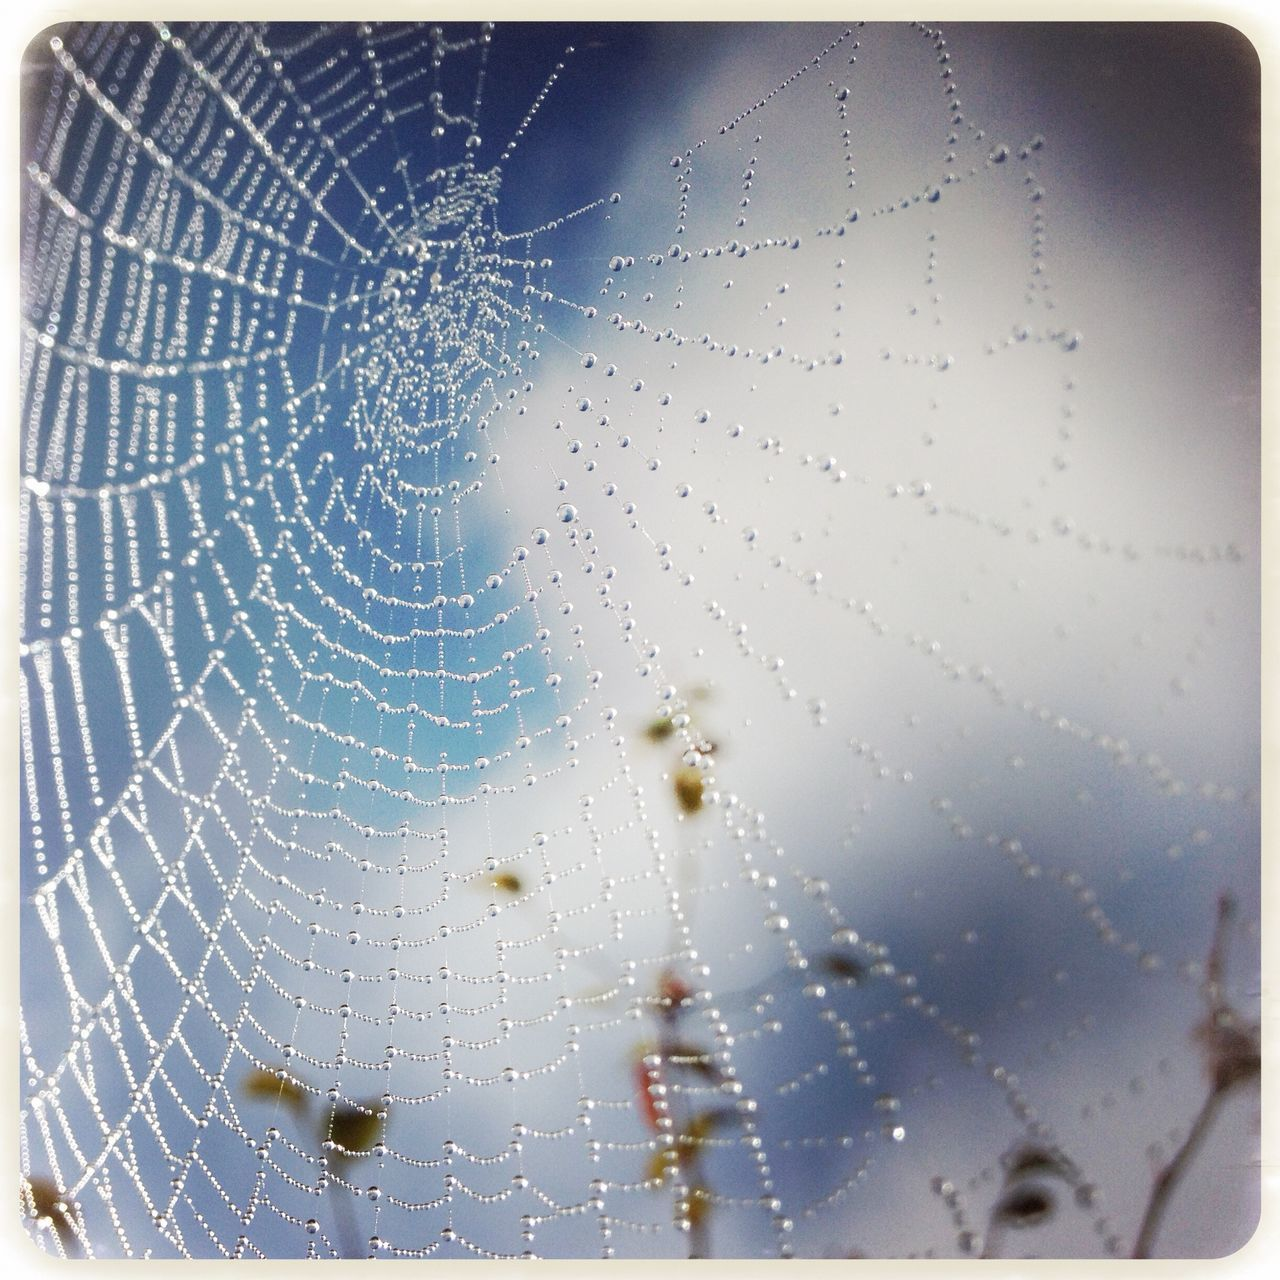 Low Angle View Of Wet Spider Web Against Sky